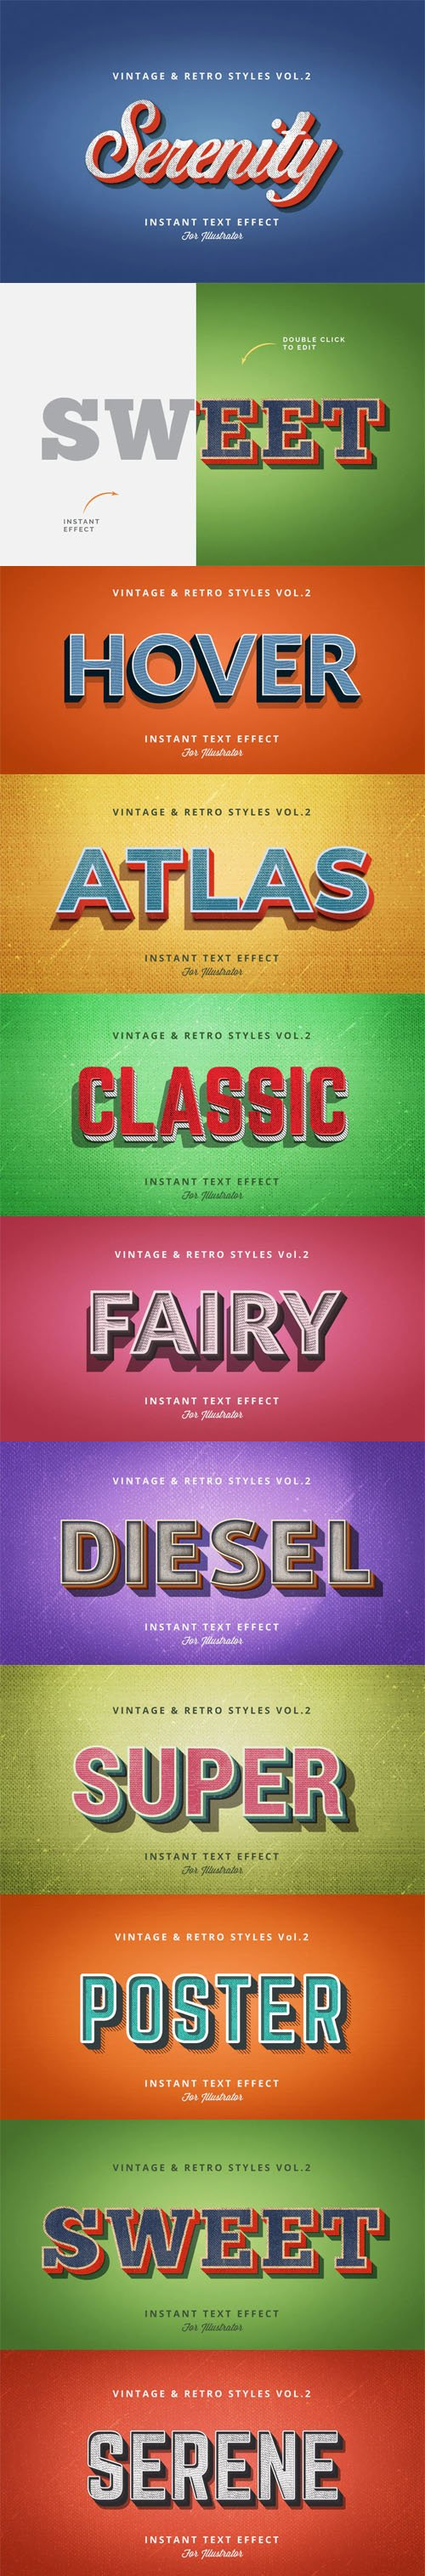 Vintage and Retro Graphic Styles Vol.2 for Adobe Illustrator